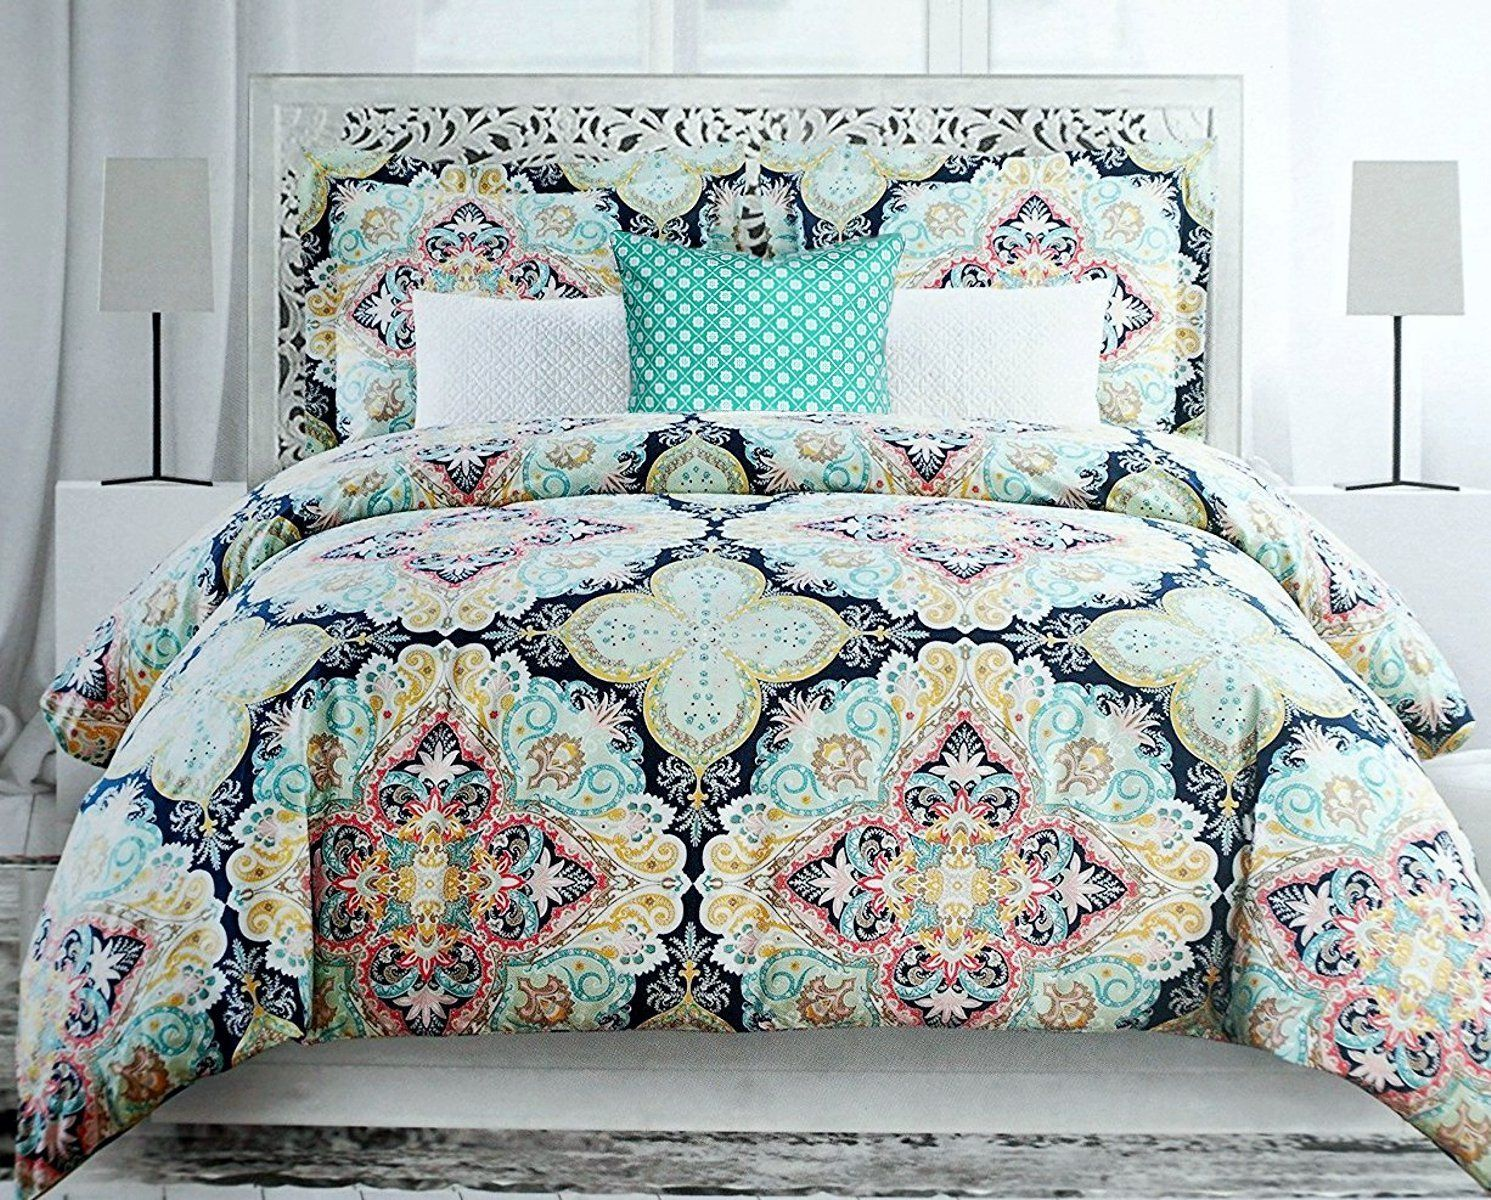 modern dp elegant bedding quilt boho memorecool covers com floral comforter style new home set pieces amazon printed exotic kitchen